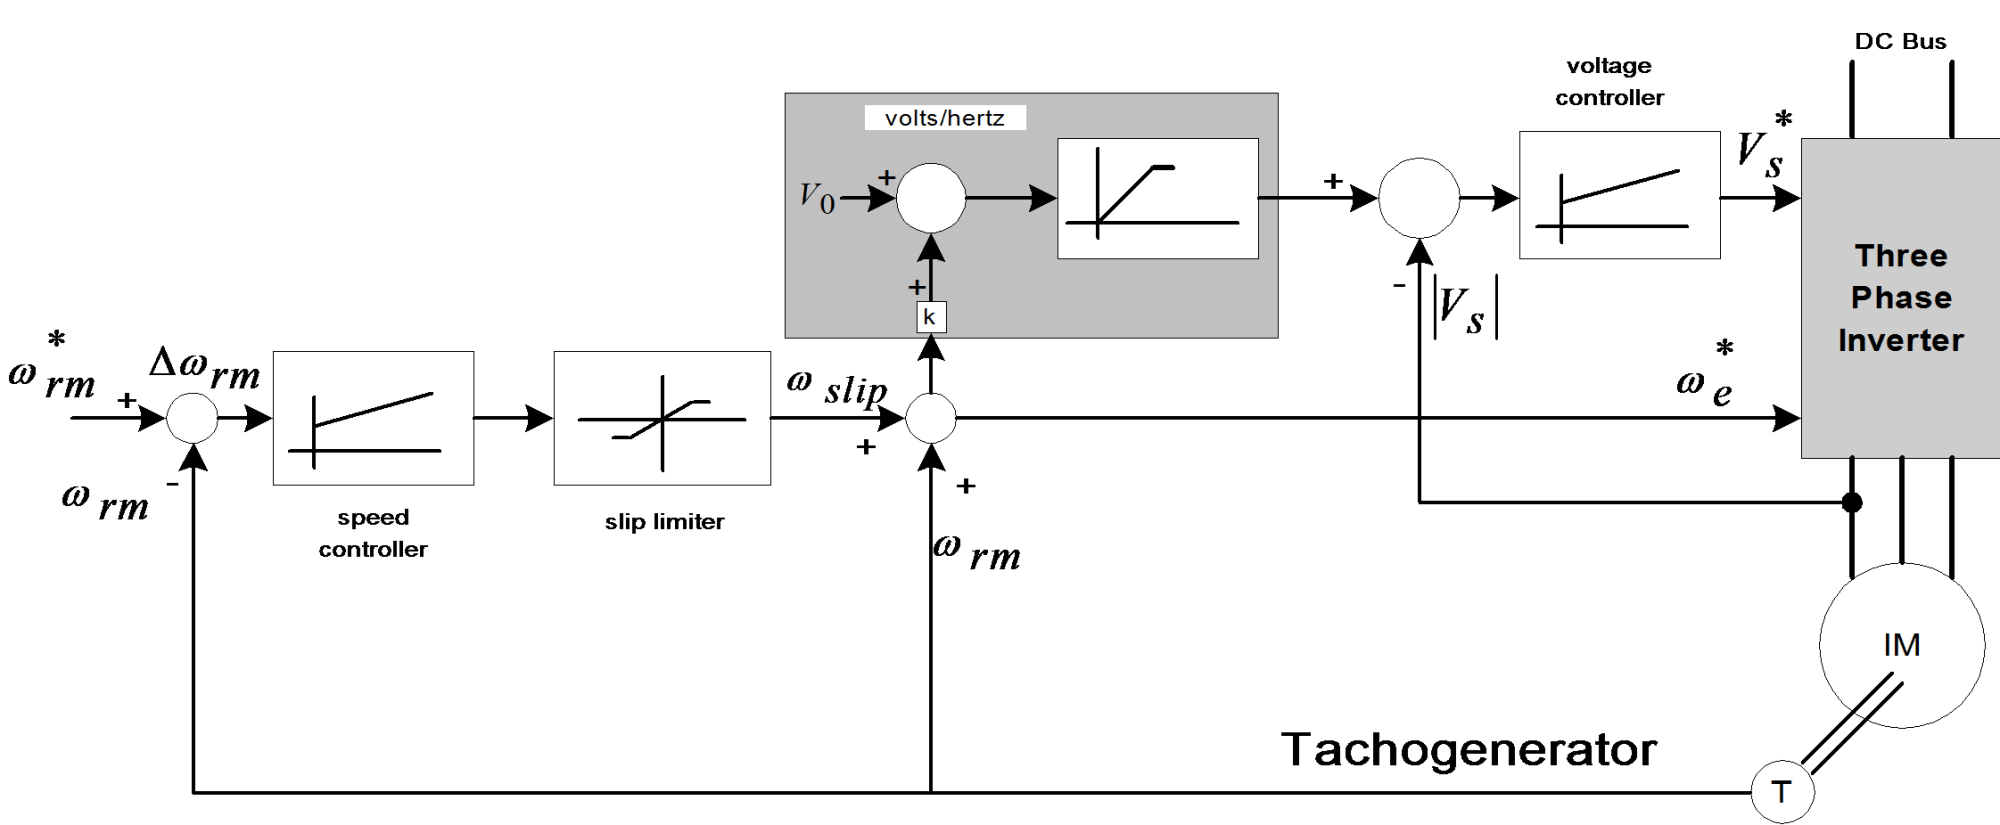 hight resolution of structure of a closed loop scalar control with volts hertz and slip regulation